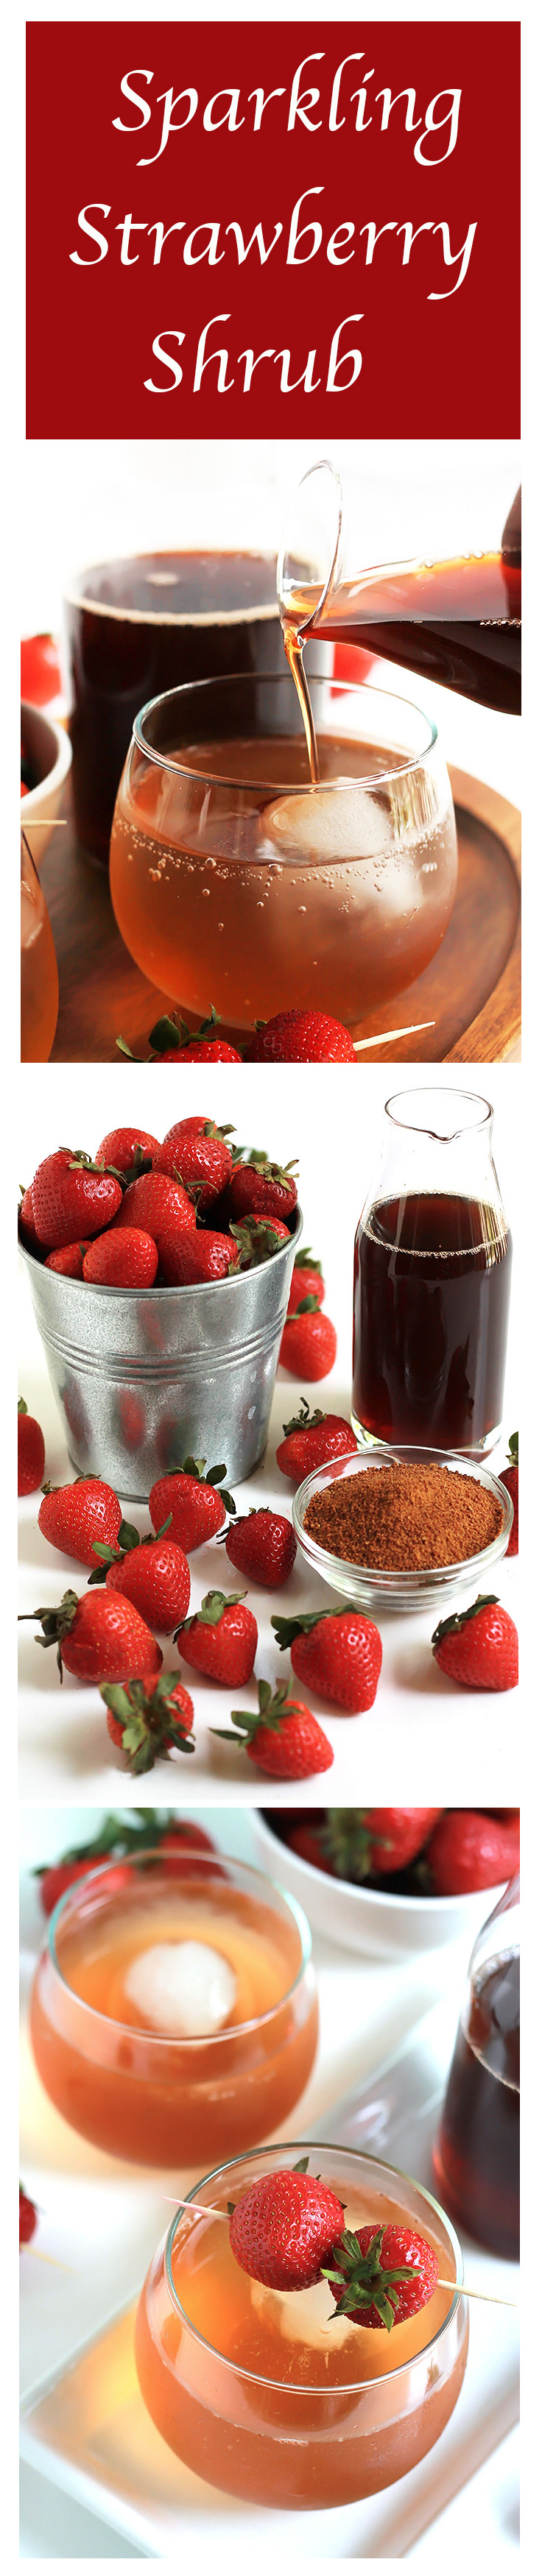 Sparkling-Strawberry-Shrub-Pin